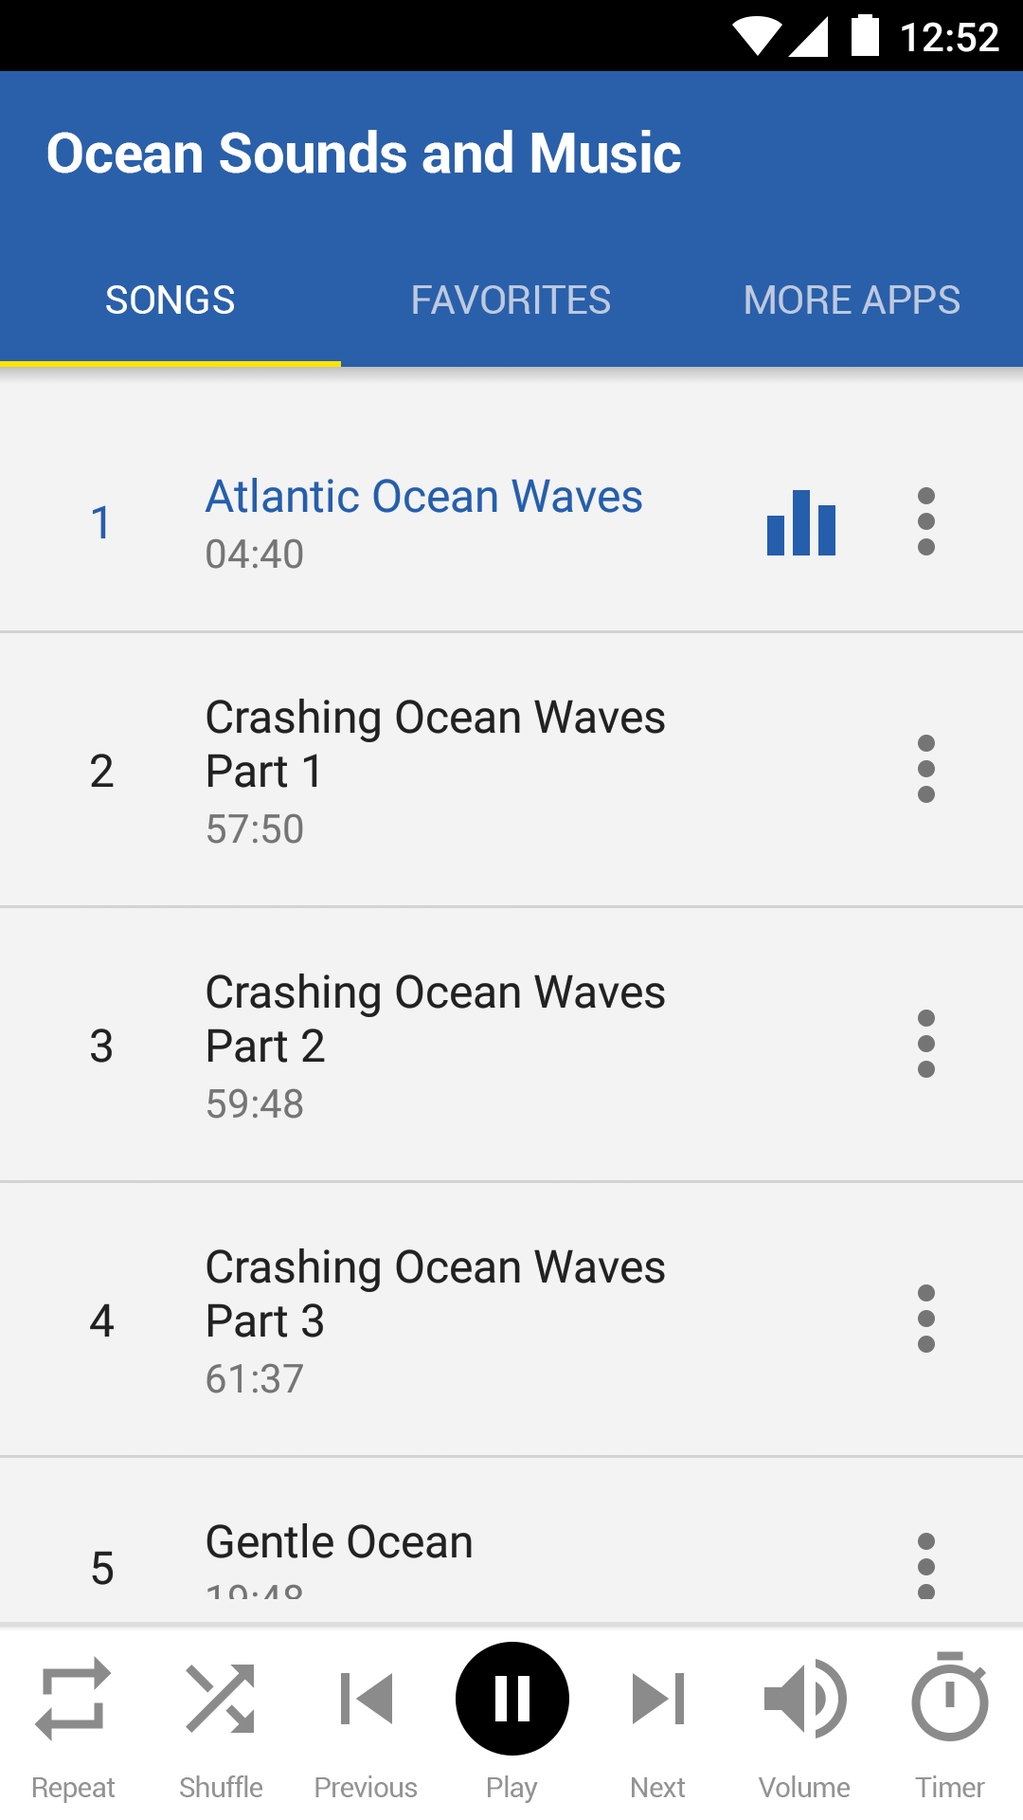 Ocean Sounds and Music Screenshot